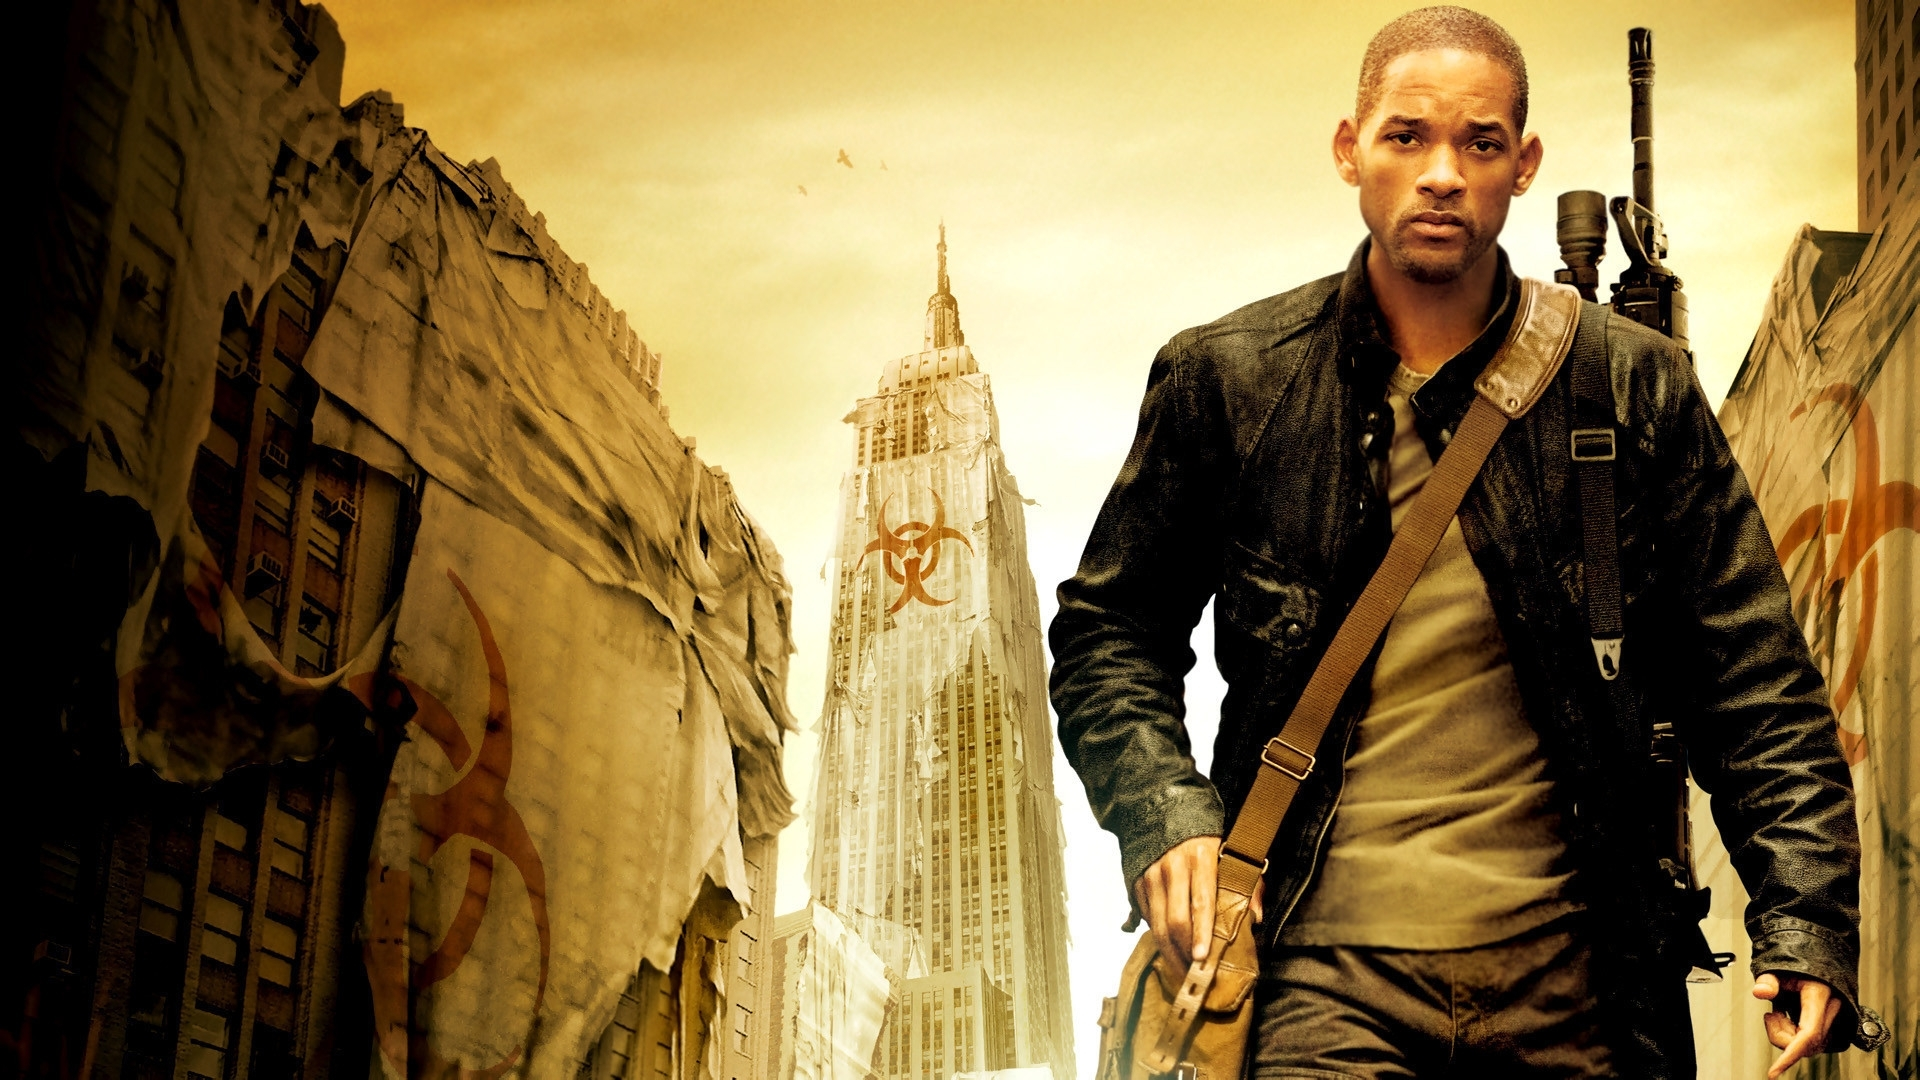 25509 download wallpaper Cinema, People, Actors, Men, Will Smith screensavers and pictures for free